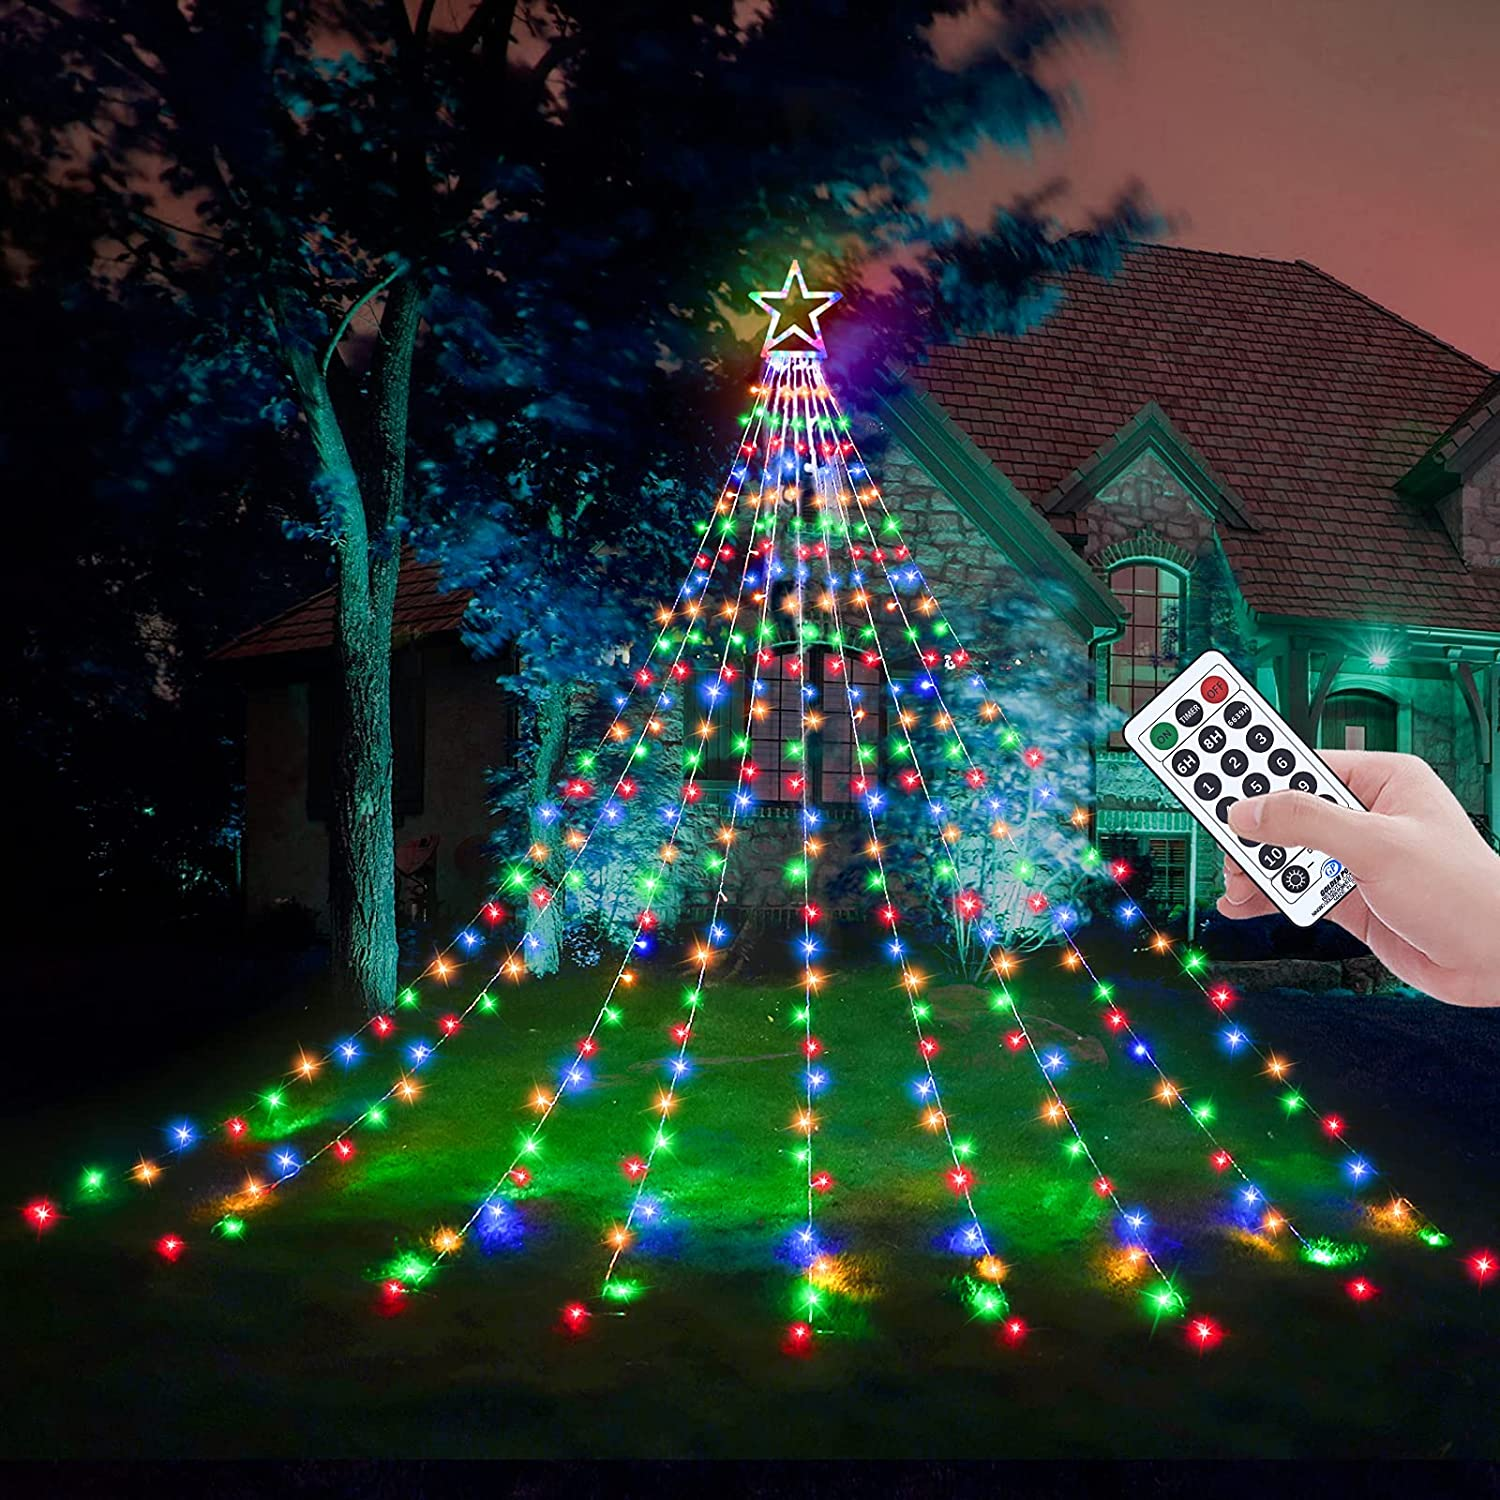 Decute Christmas Decorations Star String Lights 8 Modes and Timer with Remote, Waterproof 320 Led Christmas Tree Toppers Fairy Lights for Indoor Outdoor Yard Garden Backyard Holiday Decor Multi-Color